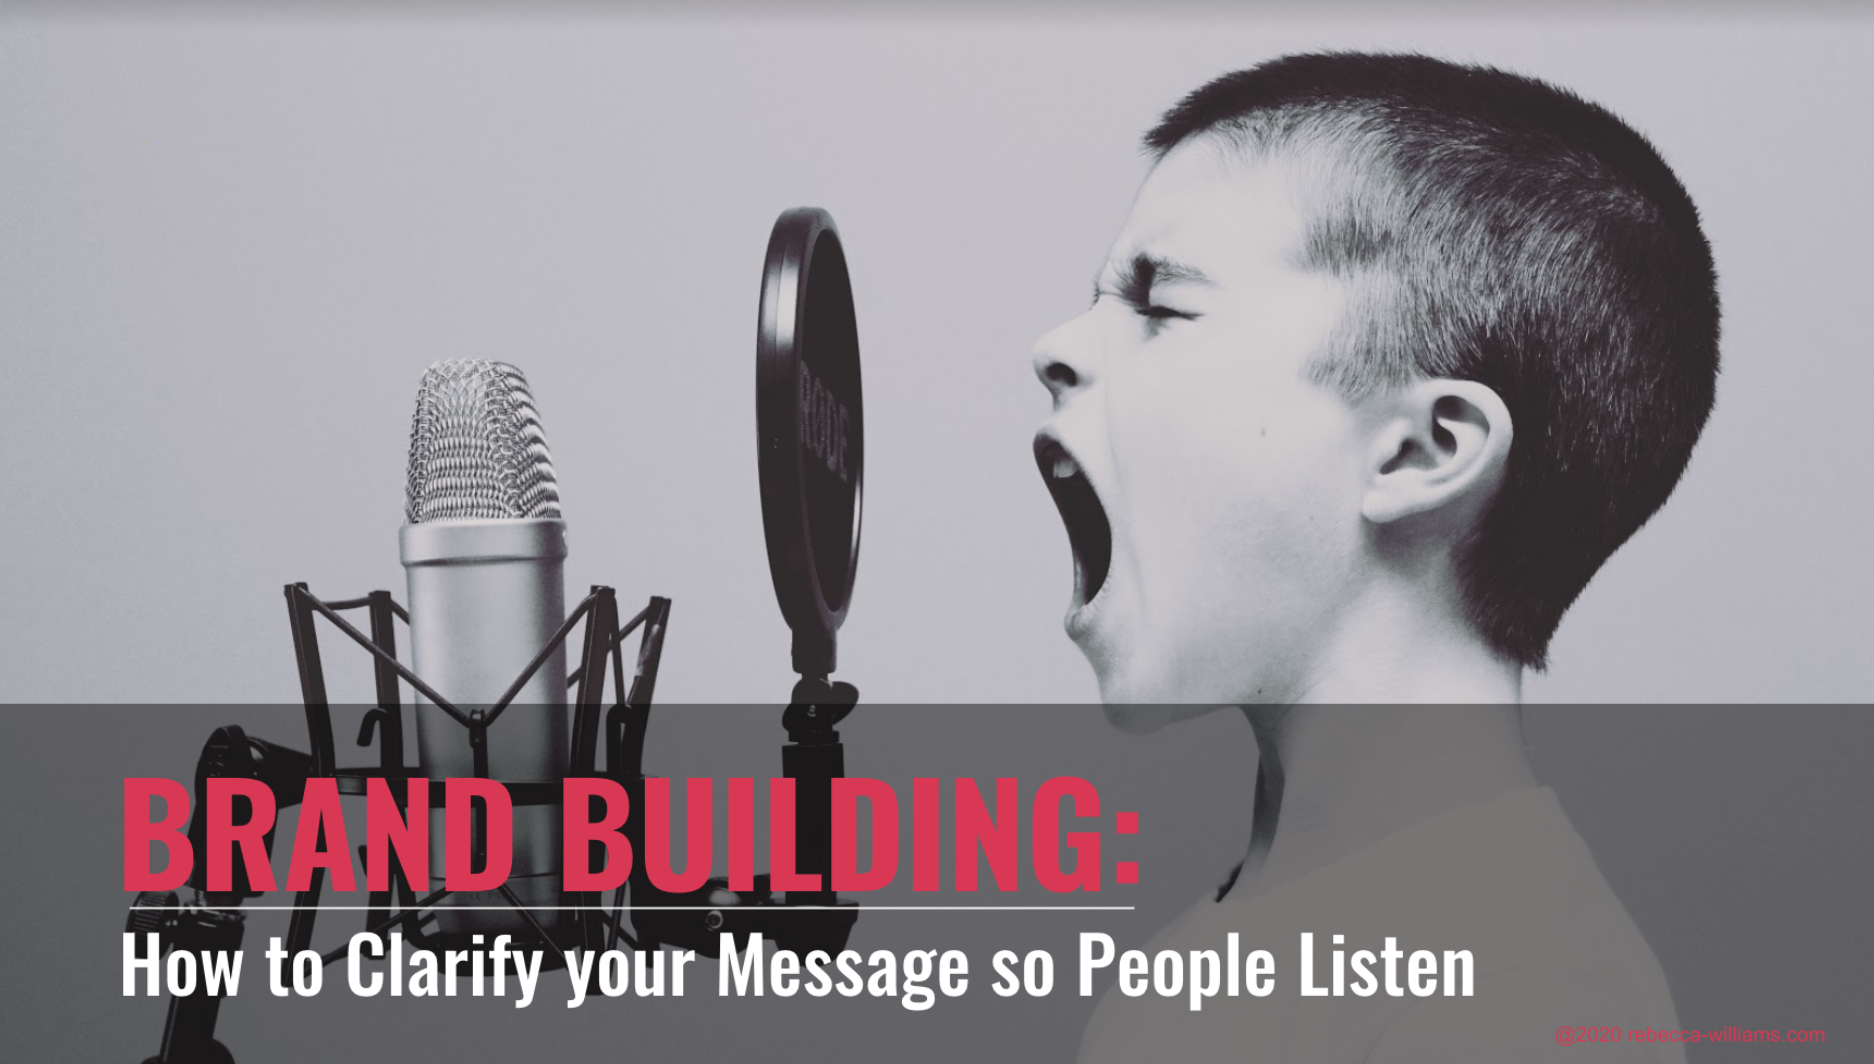 Brand Building: How to Clarify your Message so People Listen